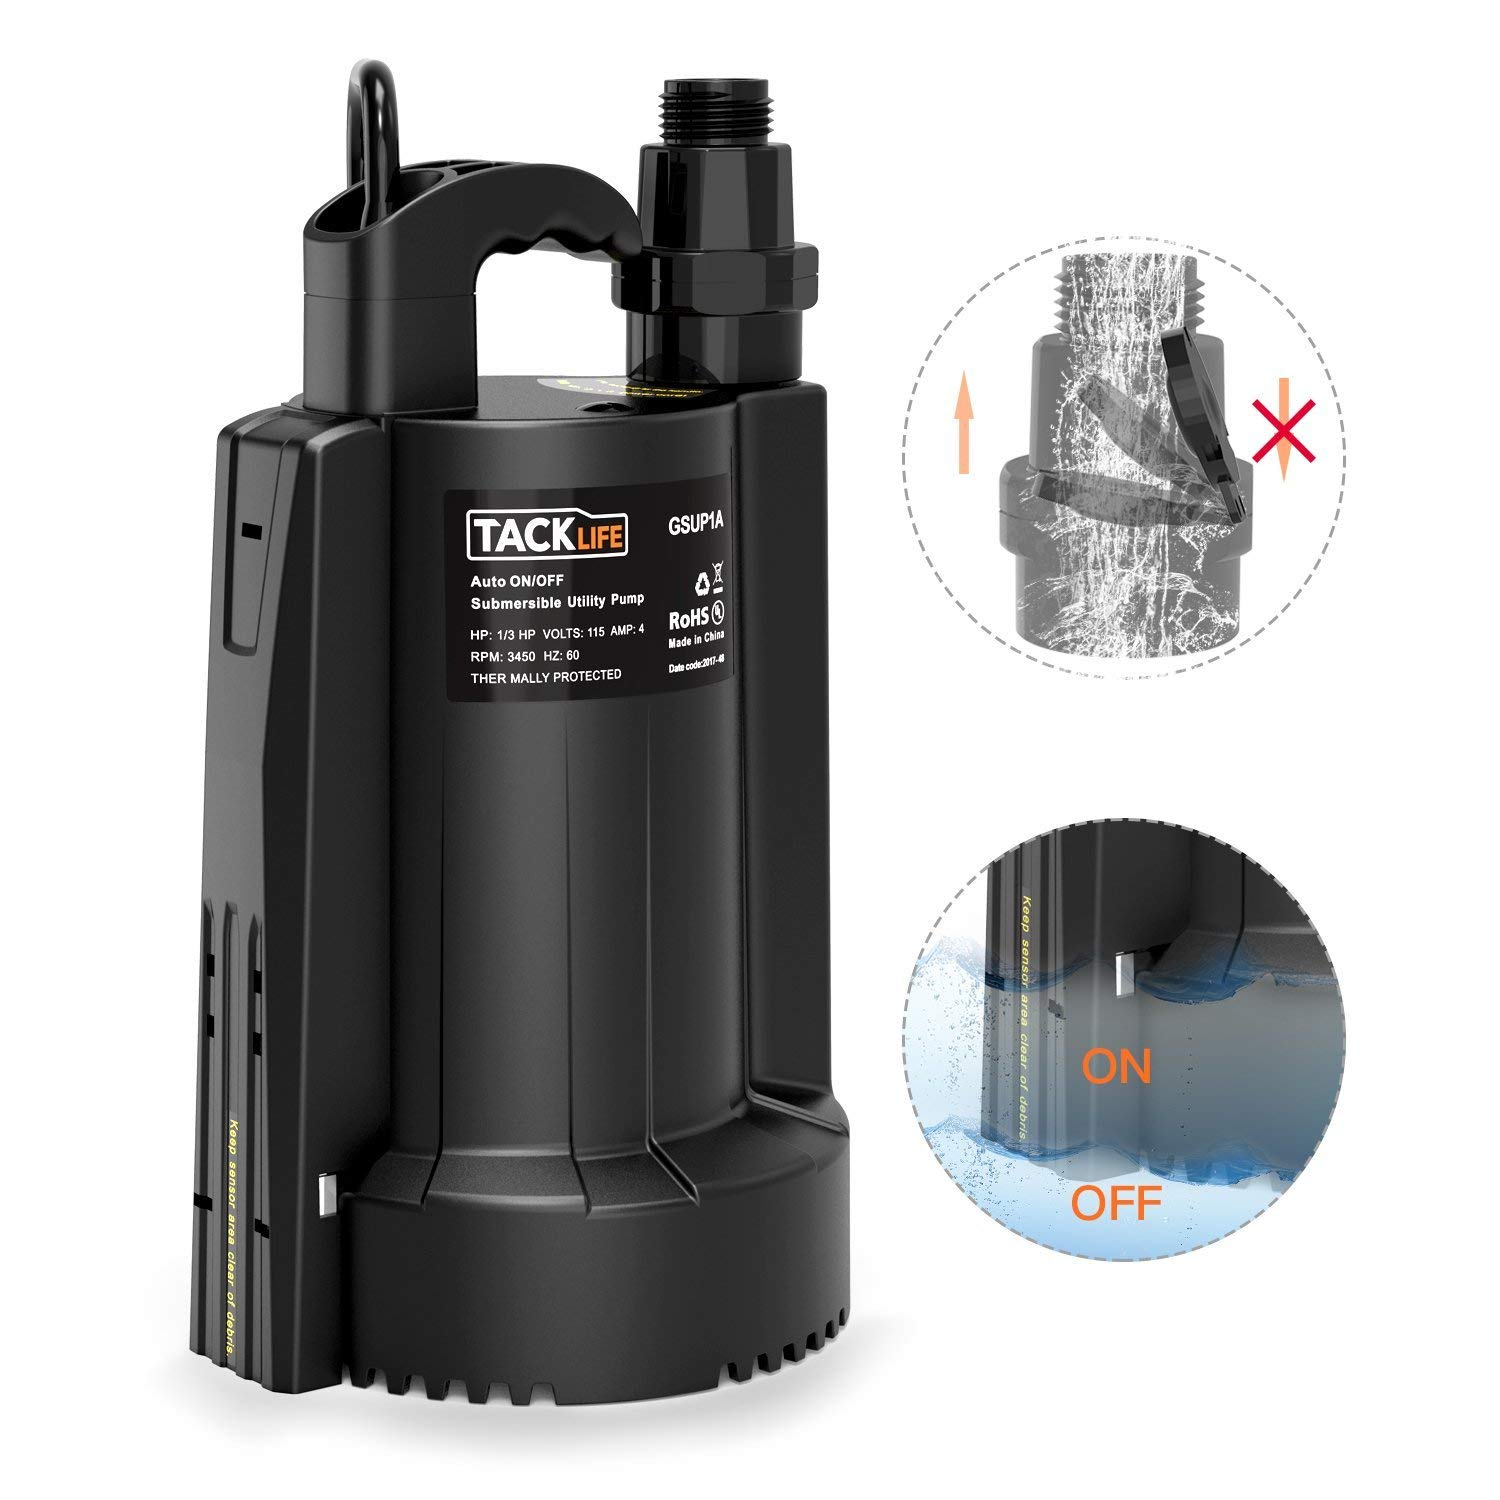 TACKLIFE Submersible Water Pump, Automatic ON/OFF, 1/3 HP 30 dB 3/4'' Adapter 2550 GPH Maximum Flow, Suitable for Use in Farms/Swimming Pools/Flooded Basements/Drainage in Water Transfer Applications by TACKLIFE